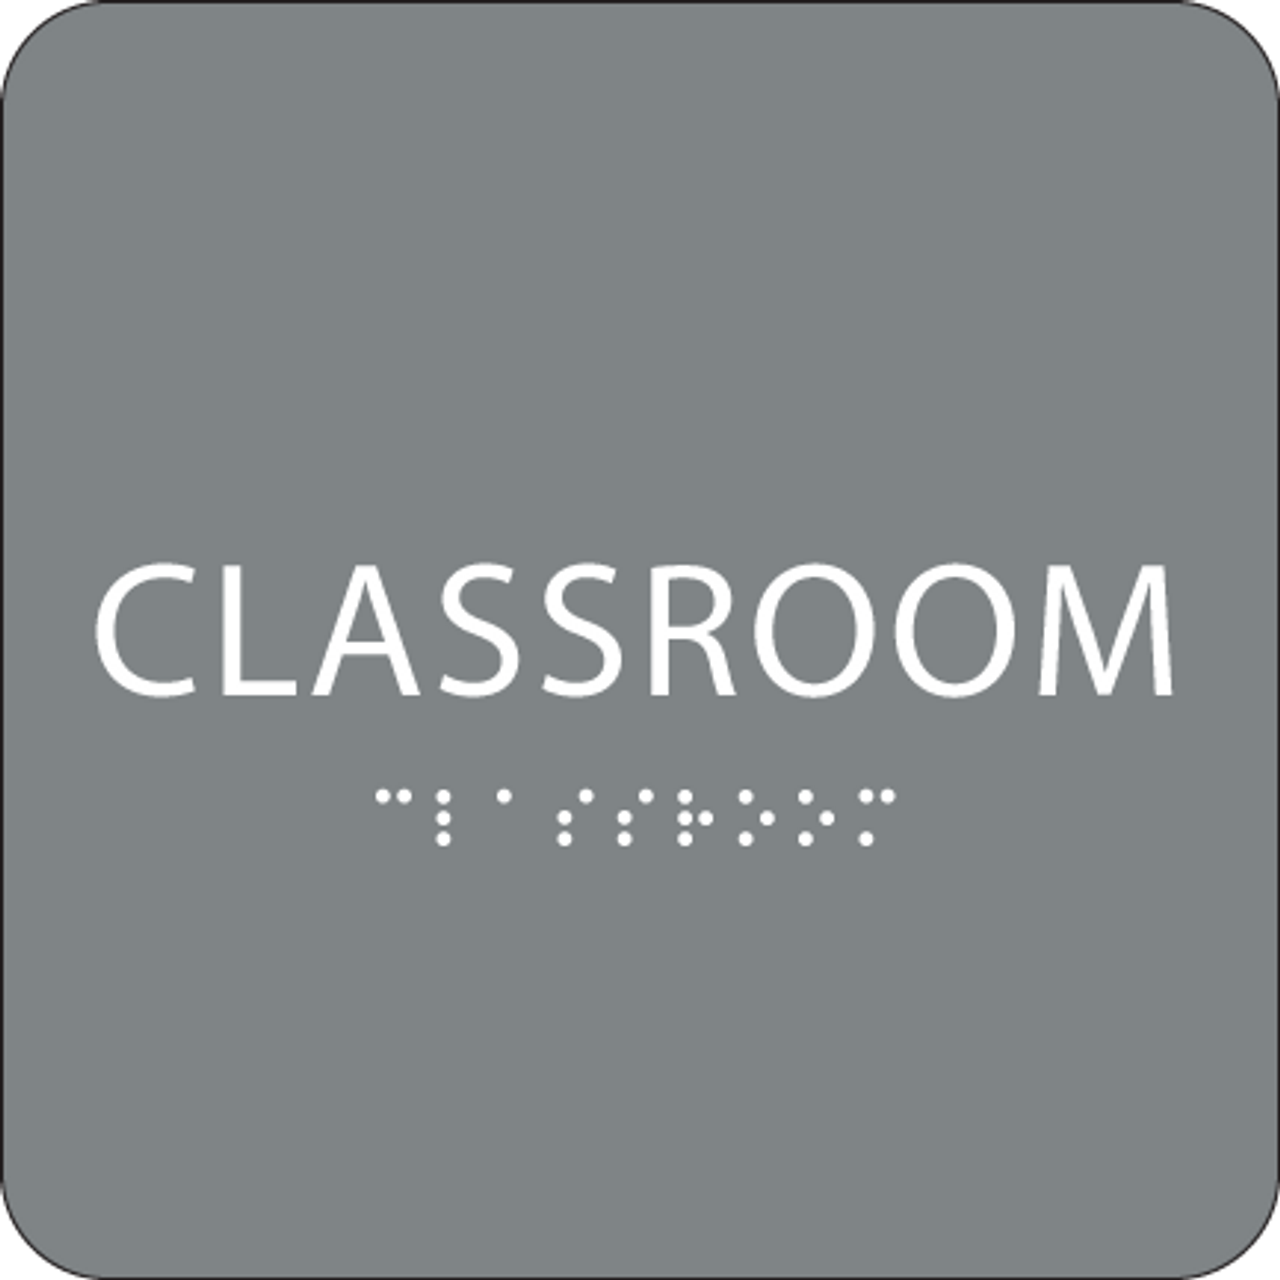 Grey Classroom Braille Sign